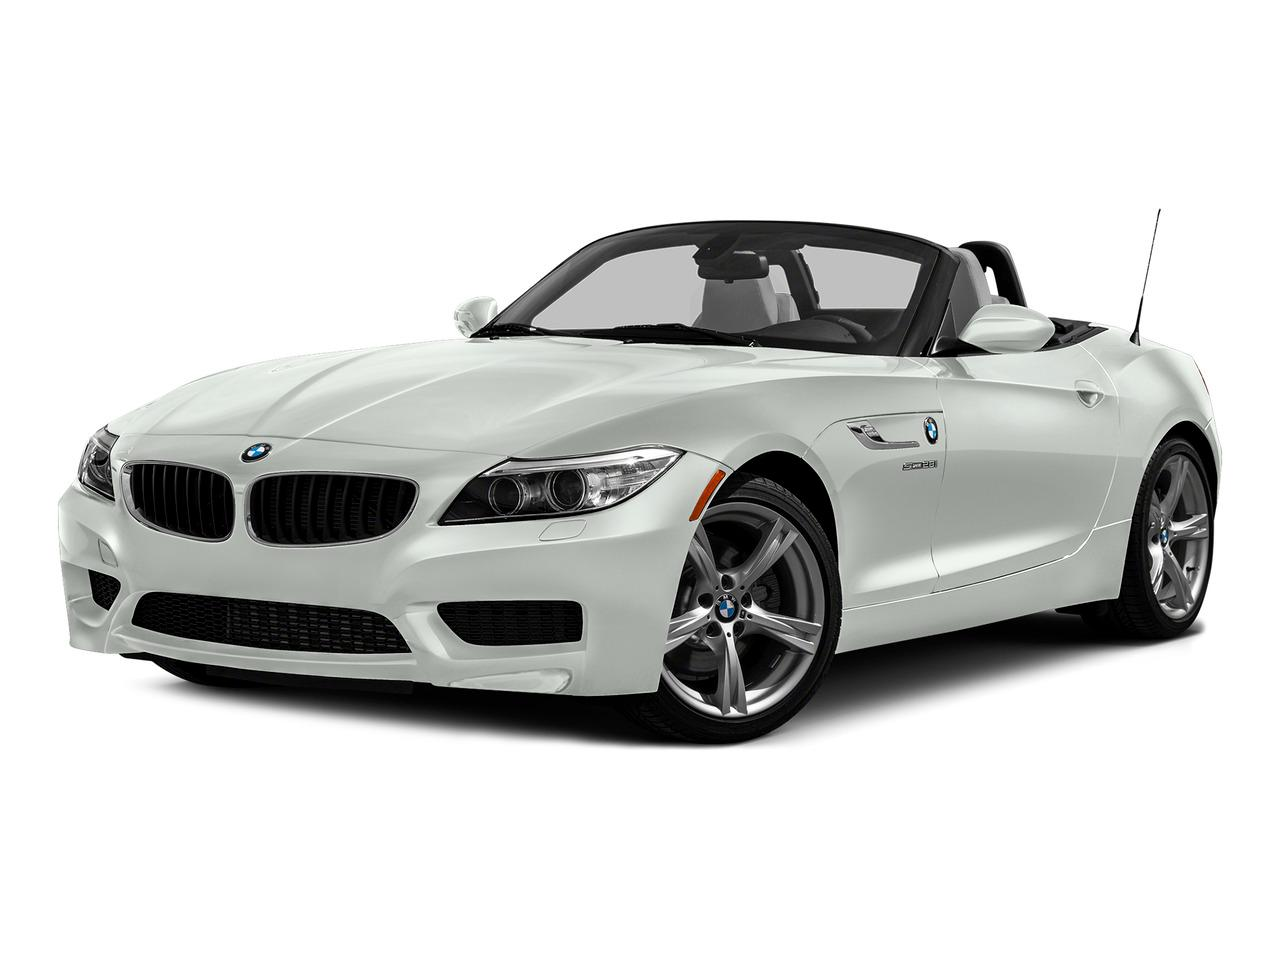 2016 BMW Z4 sDrive28i Vehicle Photo in TEMPLE, TX 76504-3447